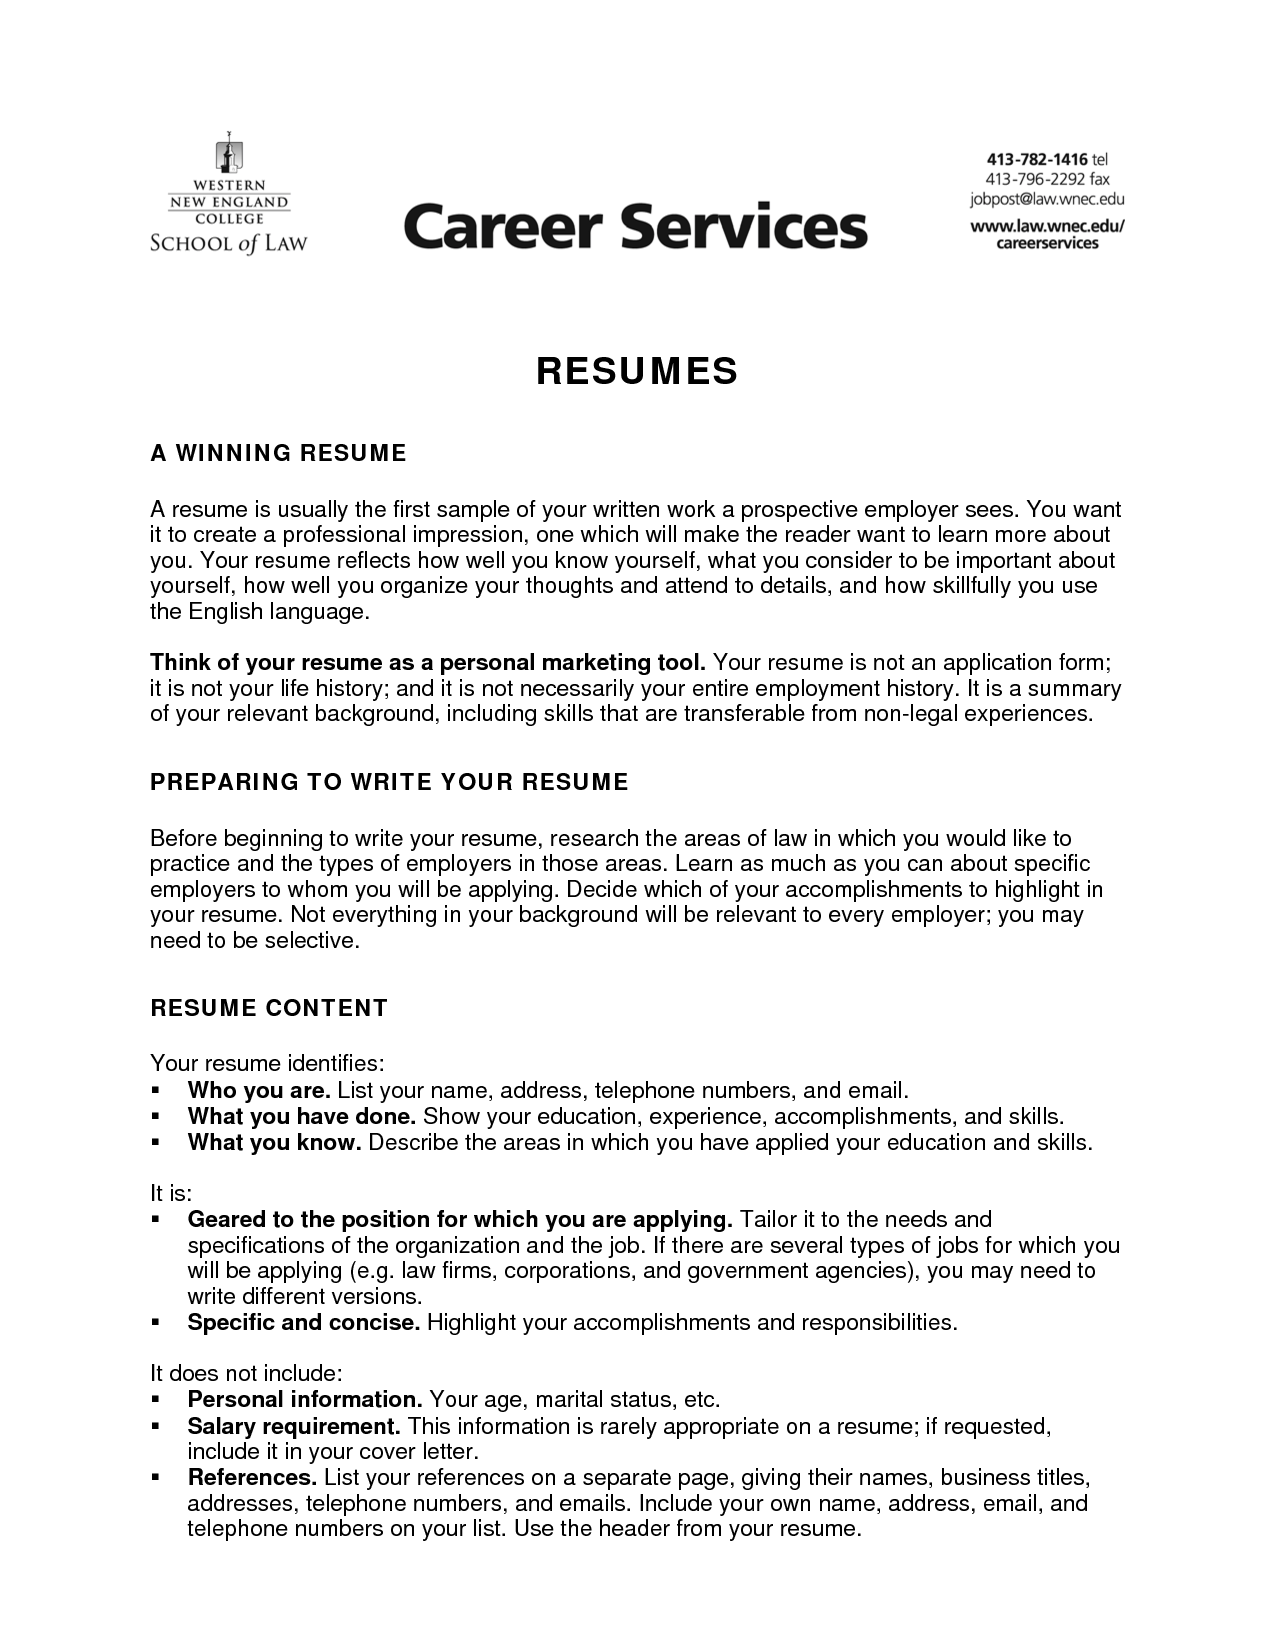 sample commercial refrigeration technician resume